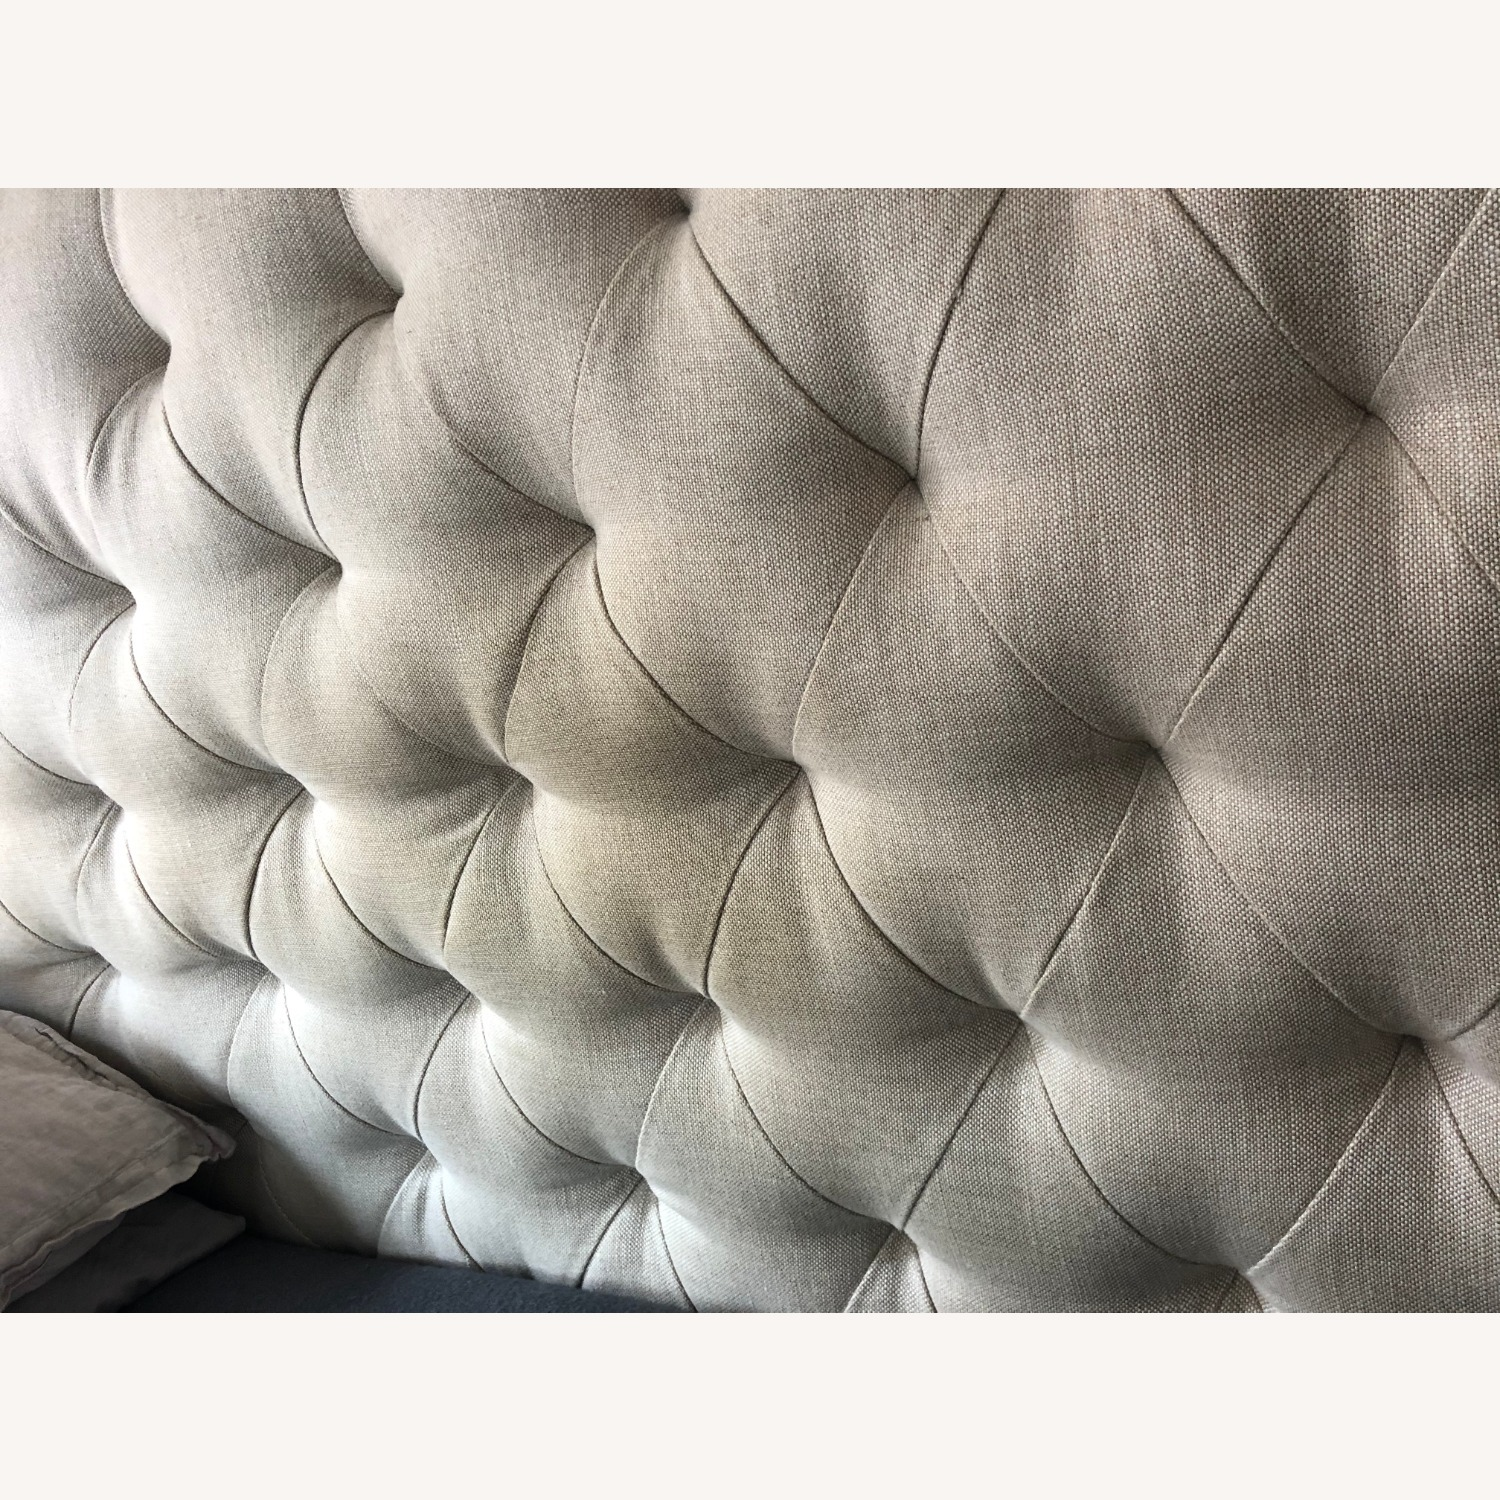 Restoration Hardware Chesterfield with Footboard - image-4